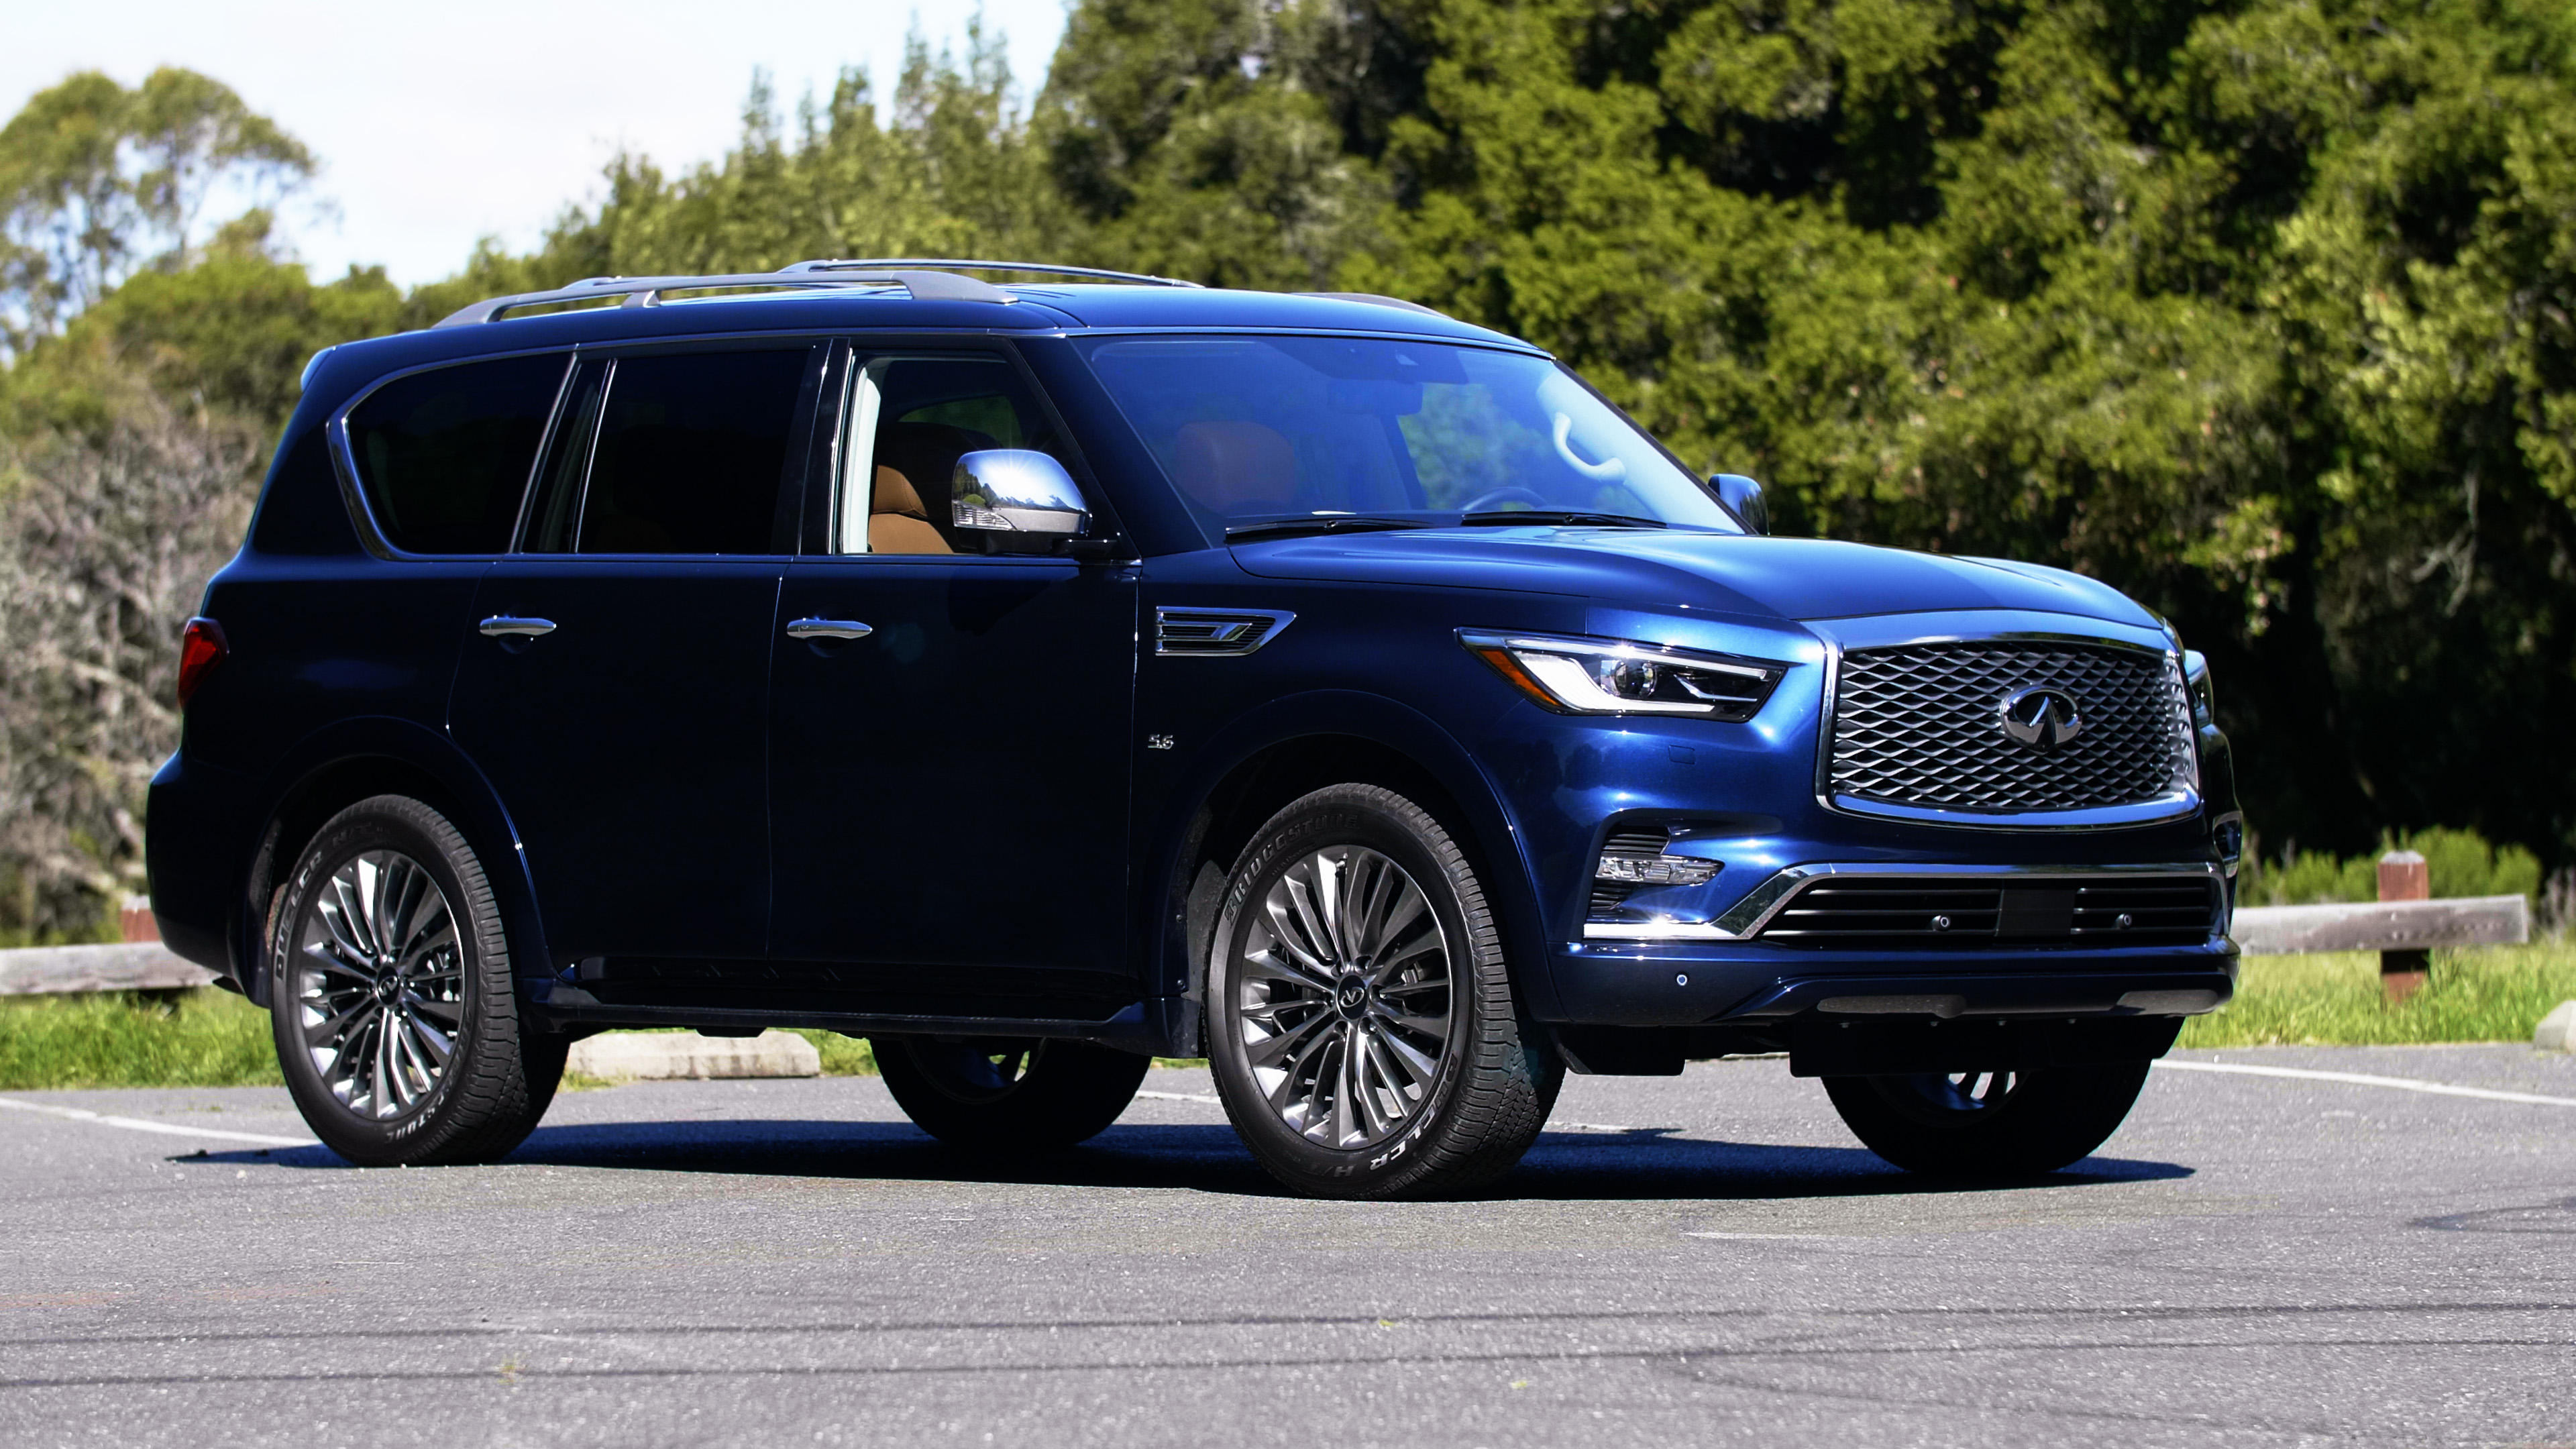 Video: 2018 Infiniti QX80: New but only half improved